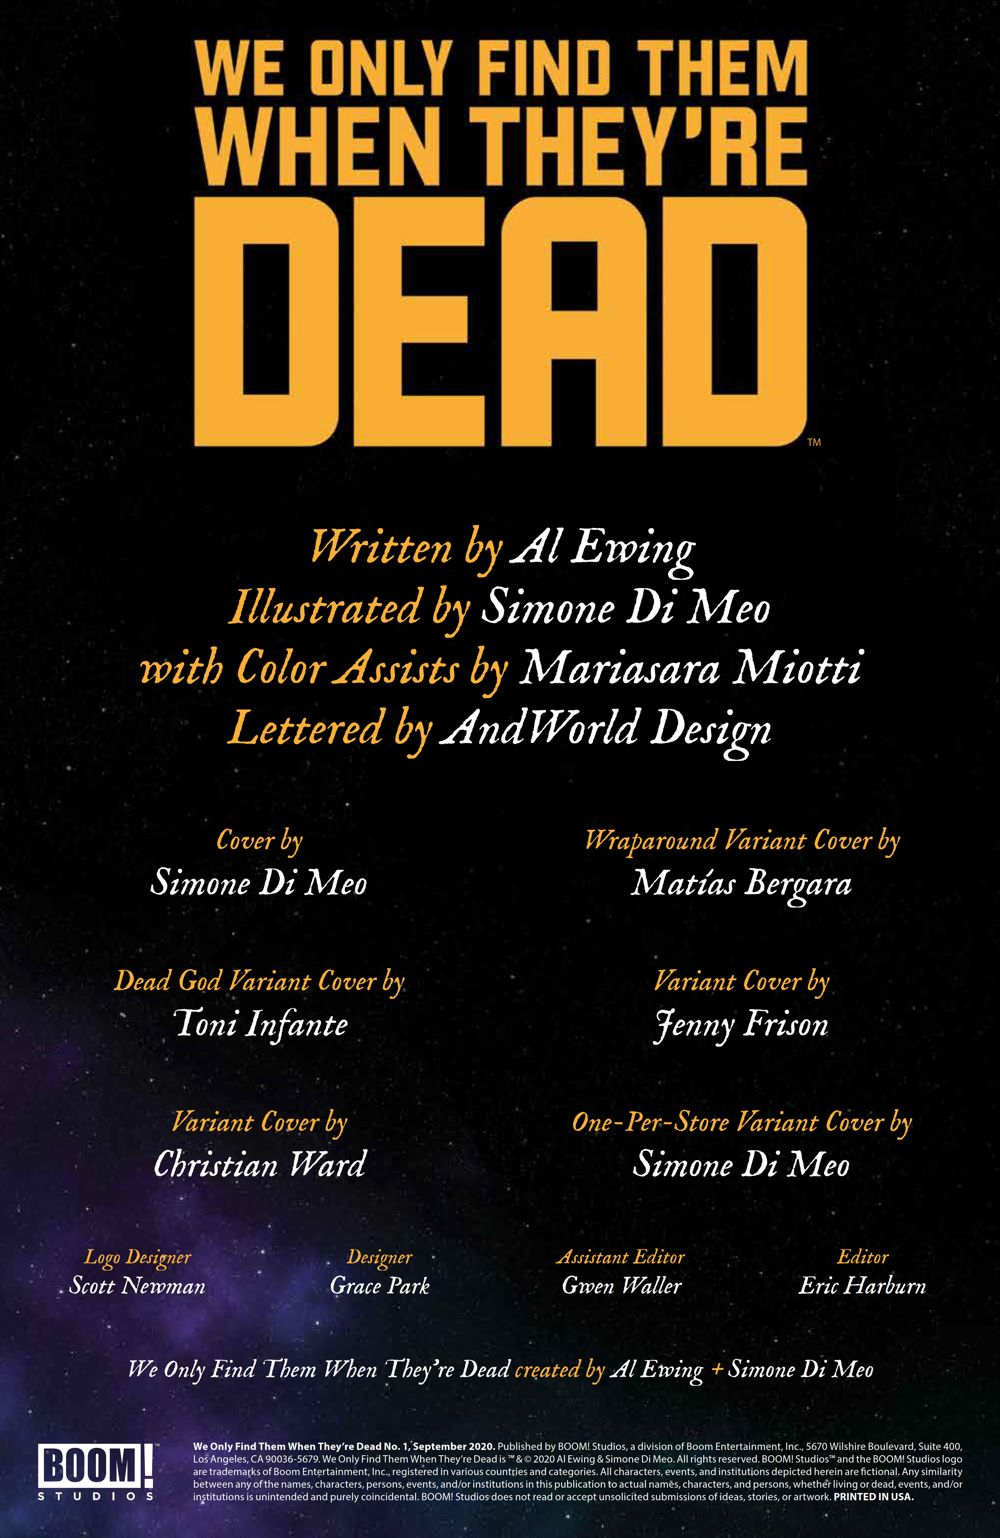 WeOnlyFindThem_001_PRESS_2 ComicList Previews: WE ONLY FIND THEM WHEN THEY'RE DEAD #1